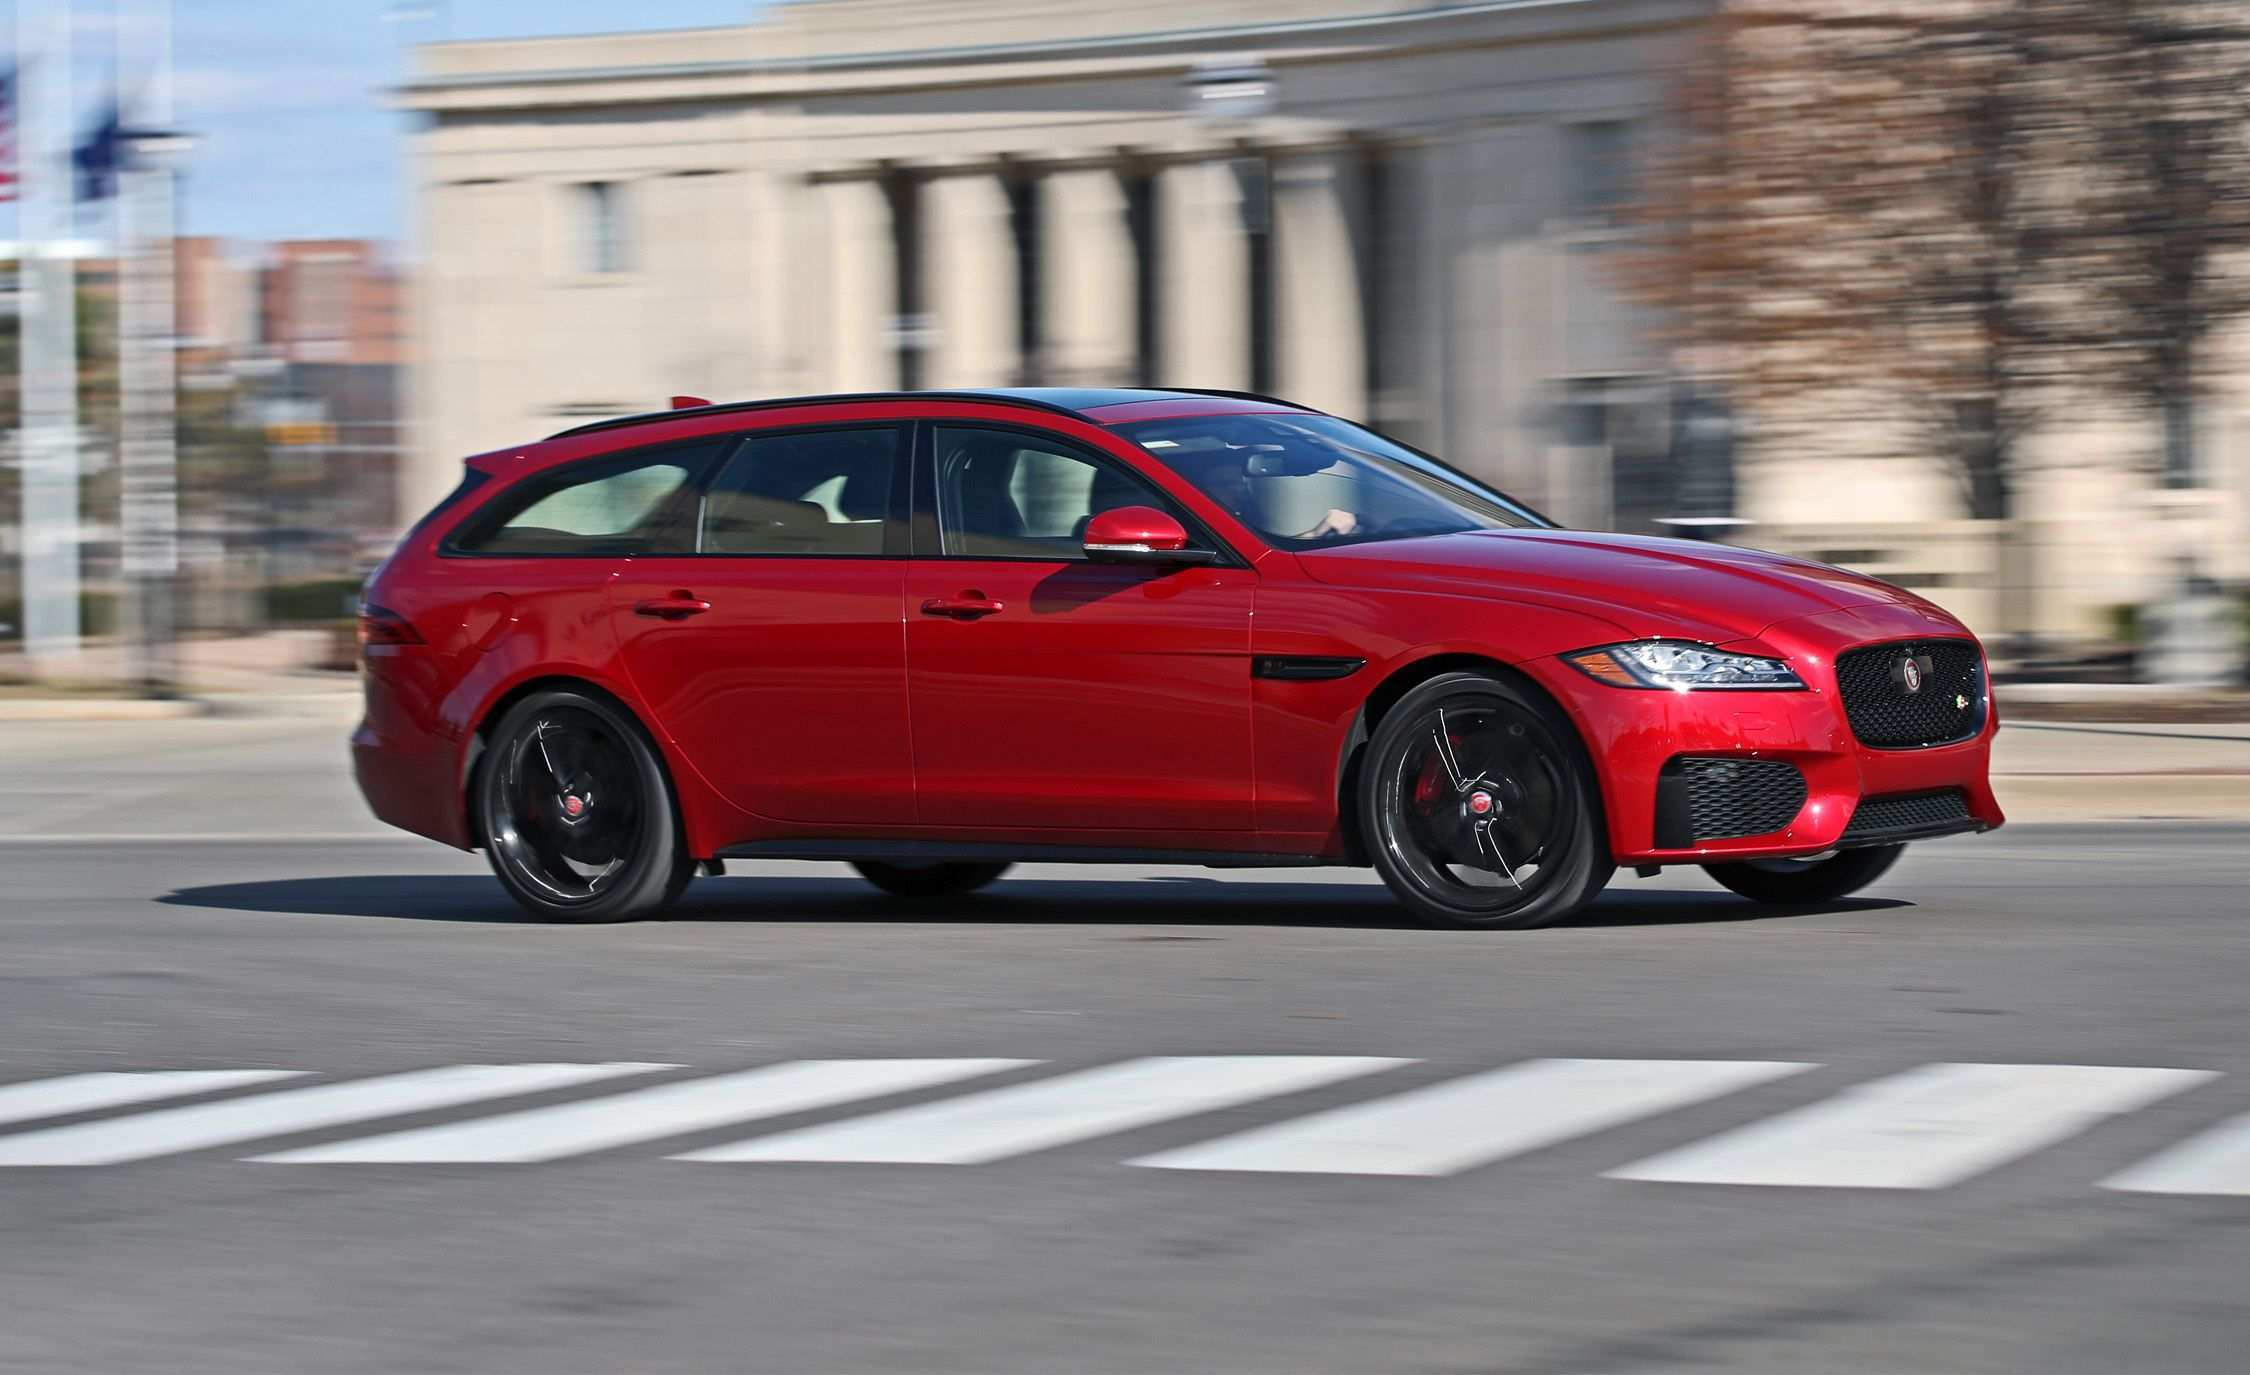 97 Great 2019 Jaguar Station Wagon Pictures for 2019 Jaguar Station Wagon